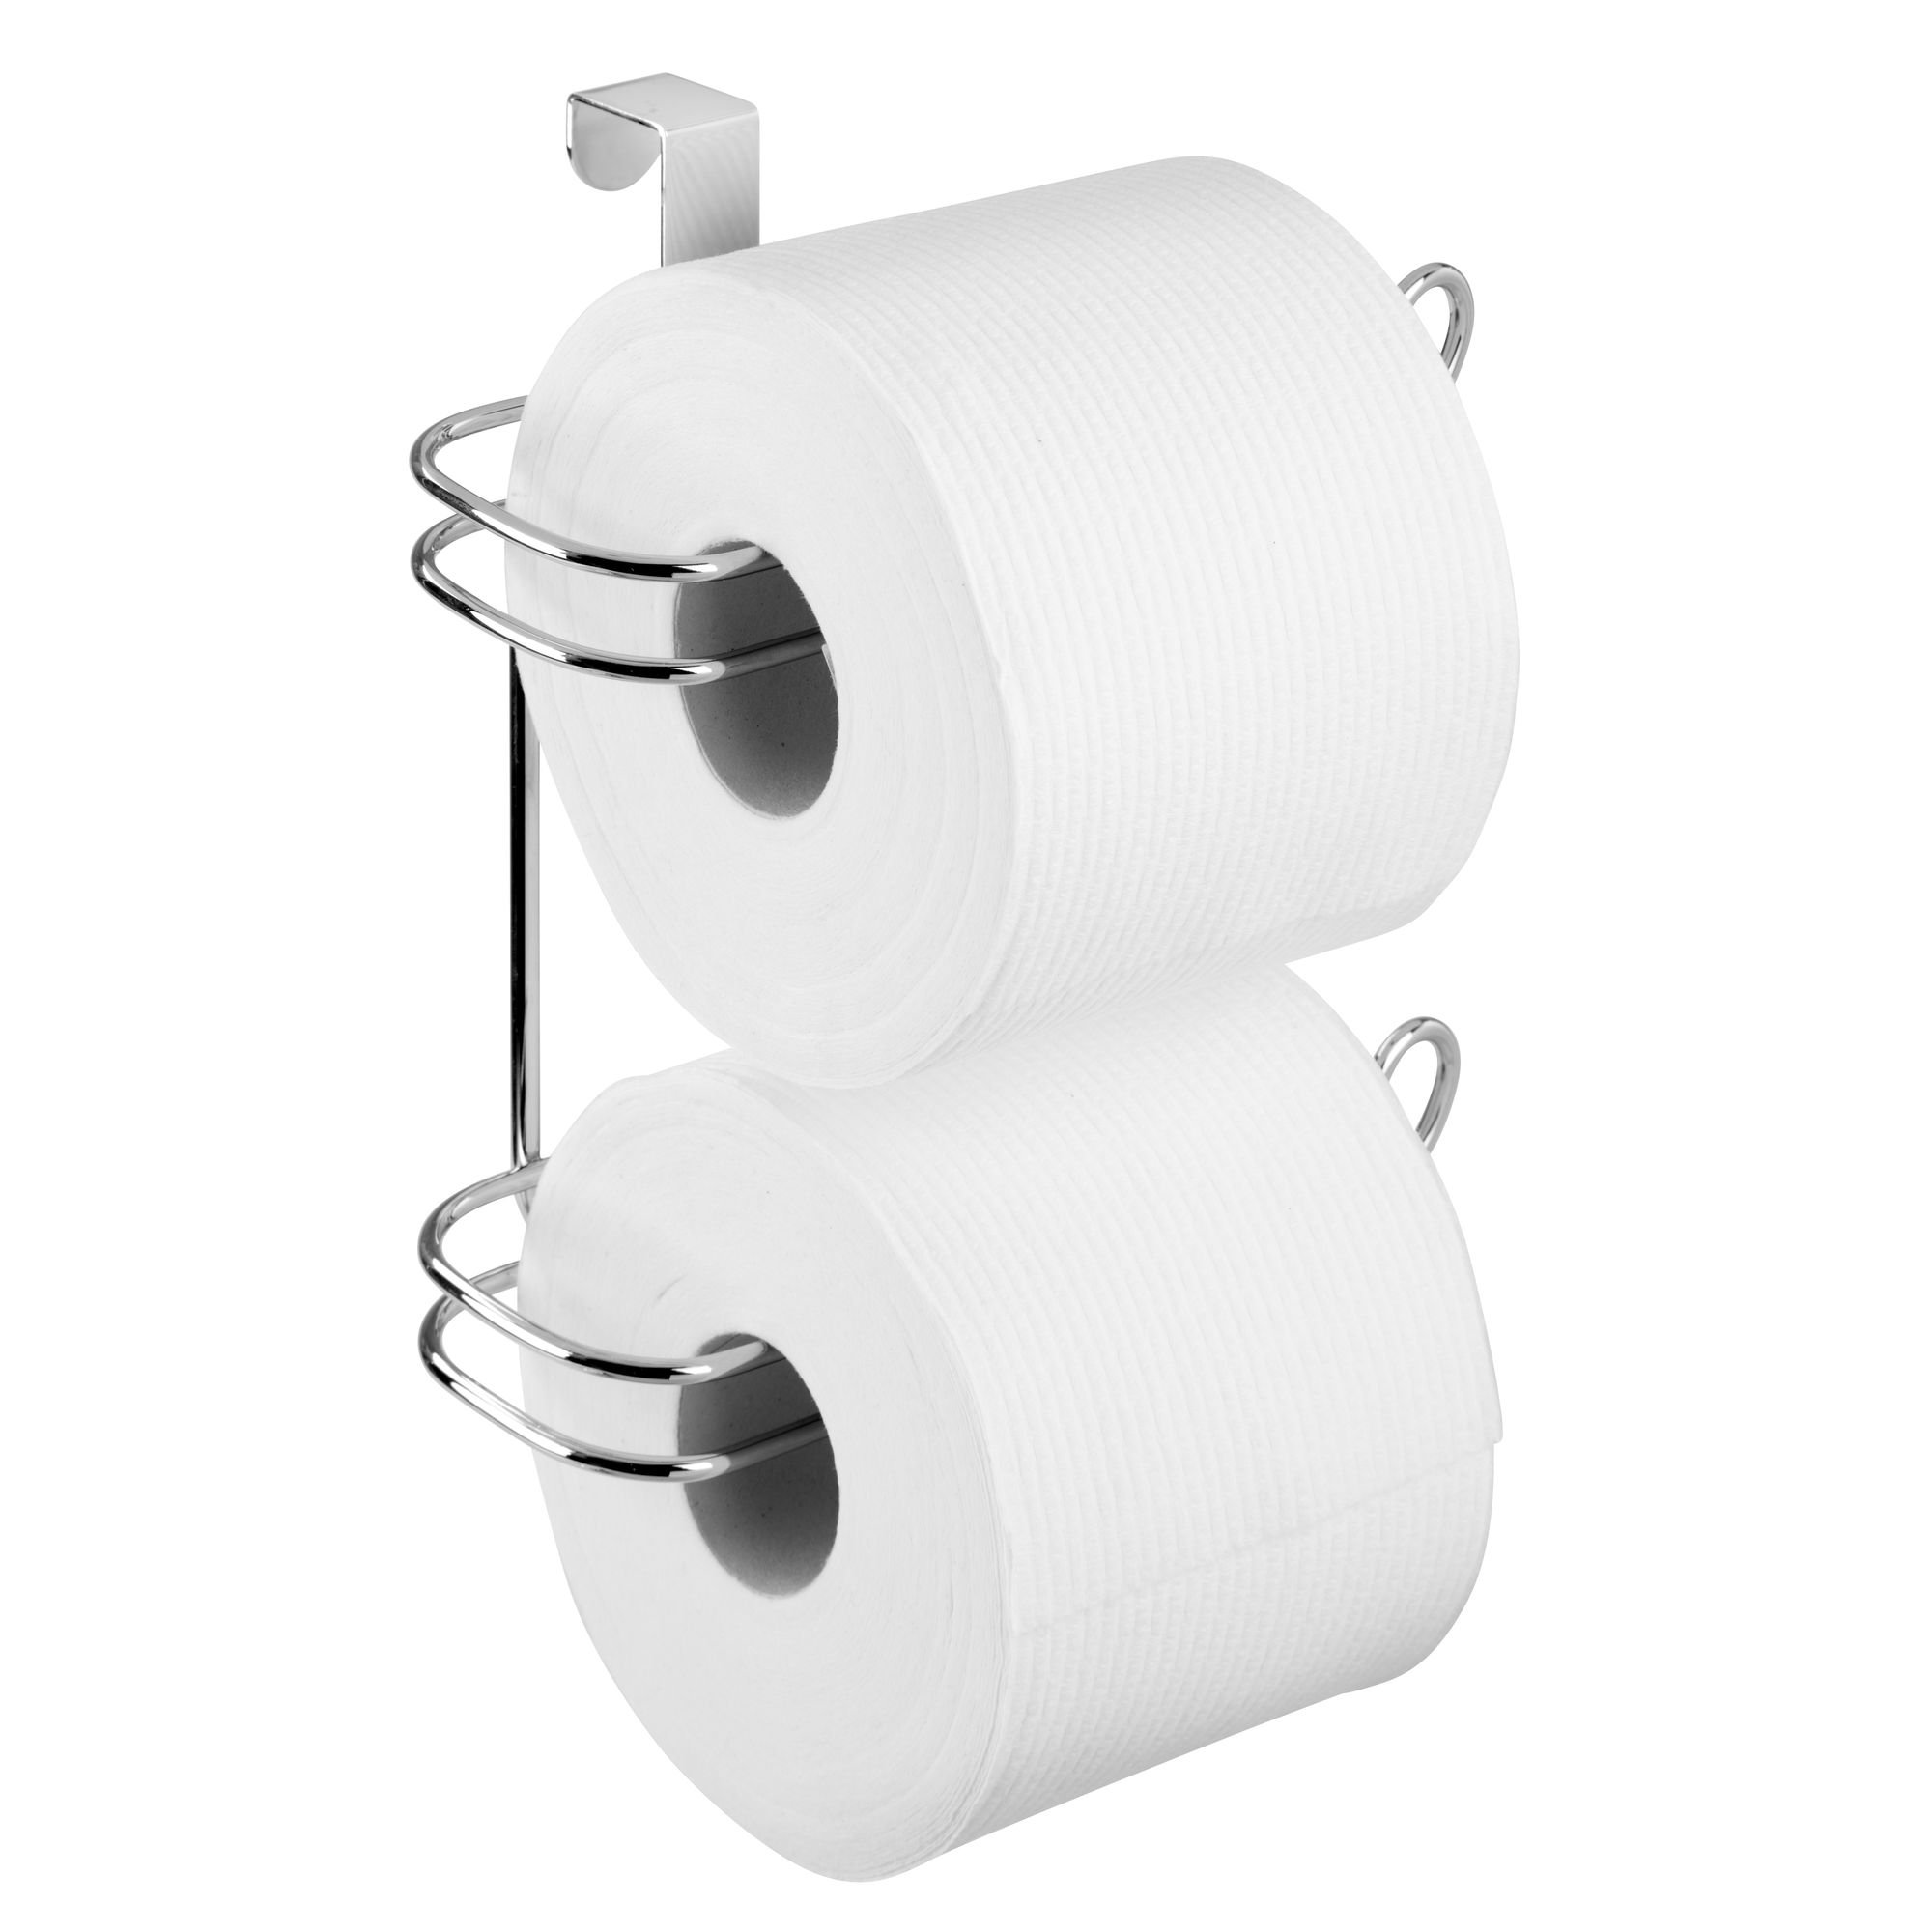 mDesign Compact Hanging Over the Tank Toilet Tissue Paper Roll Holder and Dispenser for Bathroom Storage - Holds 1 Extra Roll – Space Saving Design - Pack of 2, Durable Metal Wire in Chrome Finish by mDesign (Image #4)